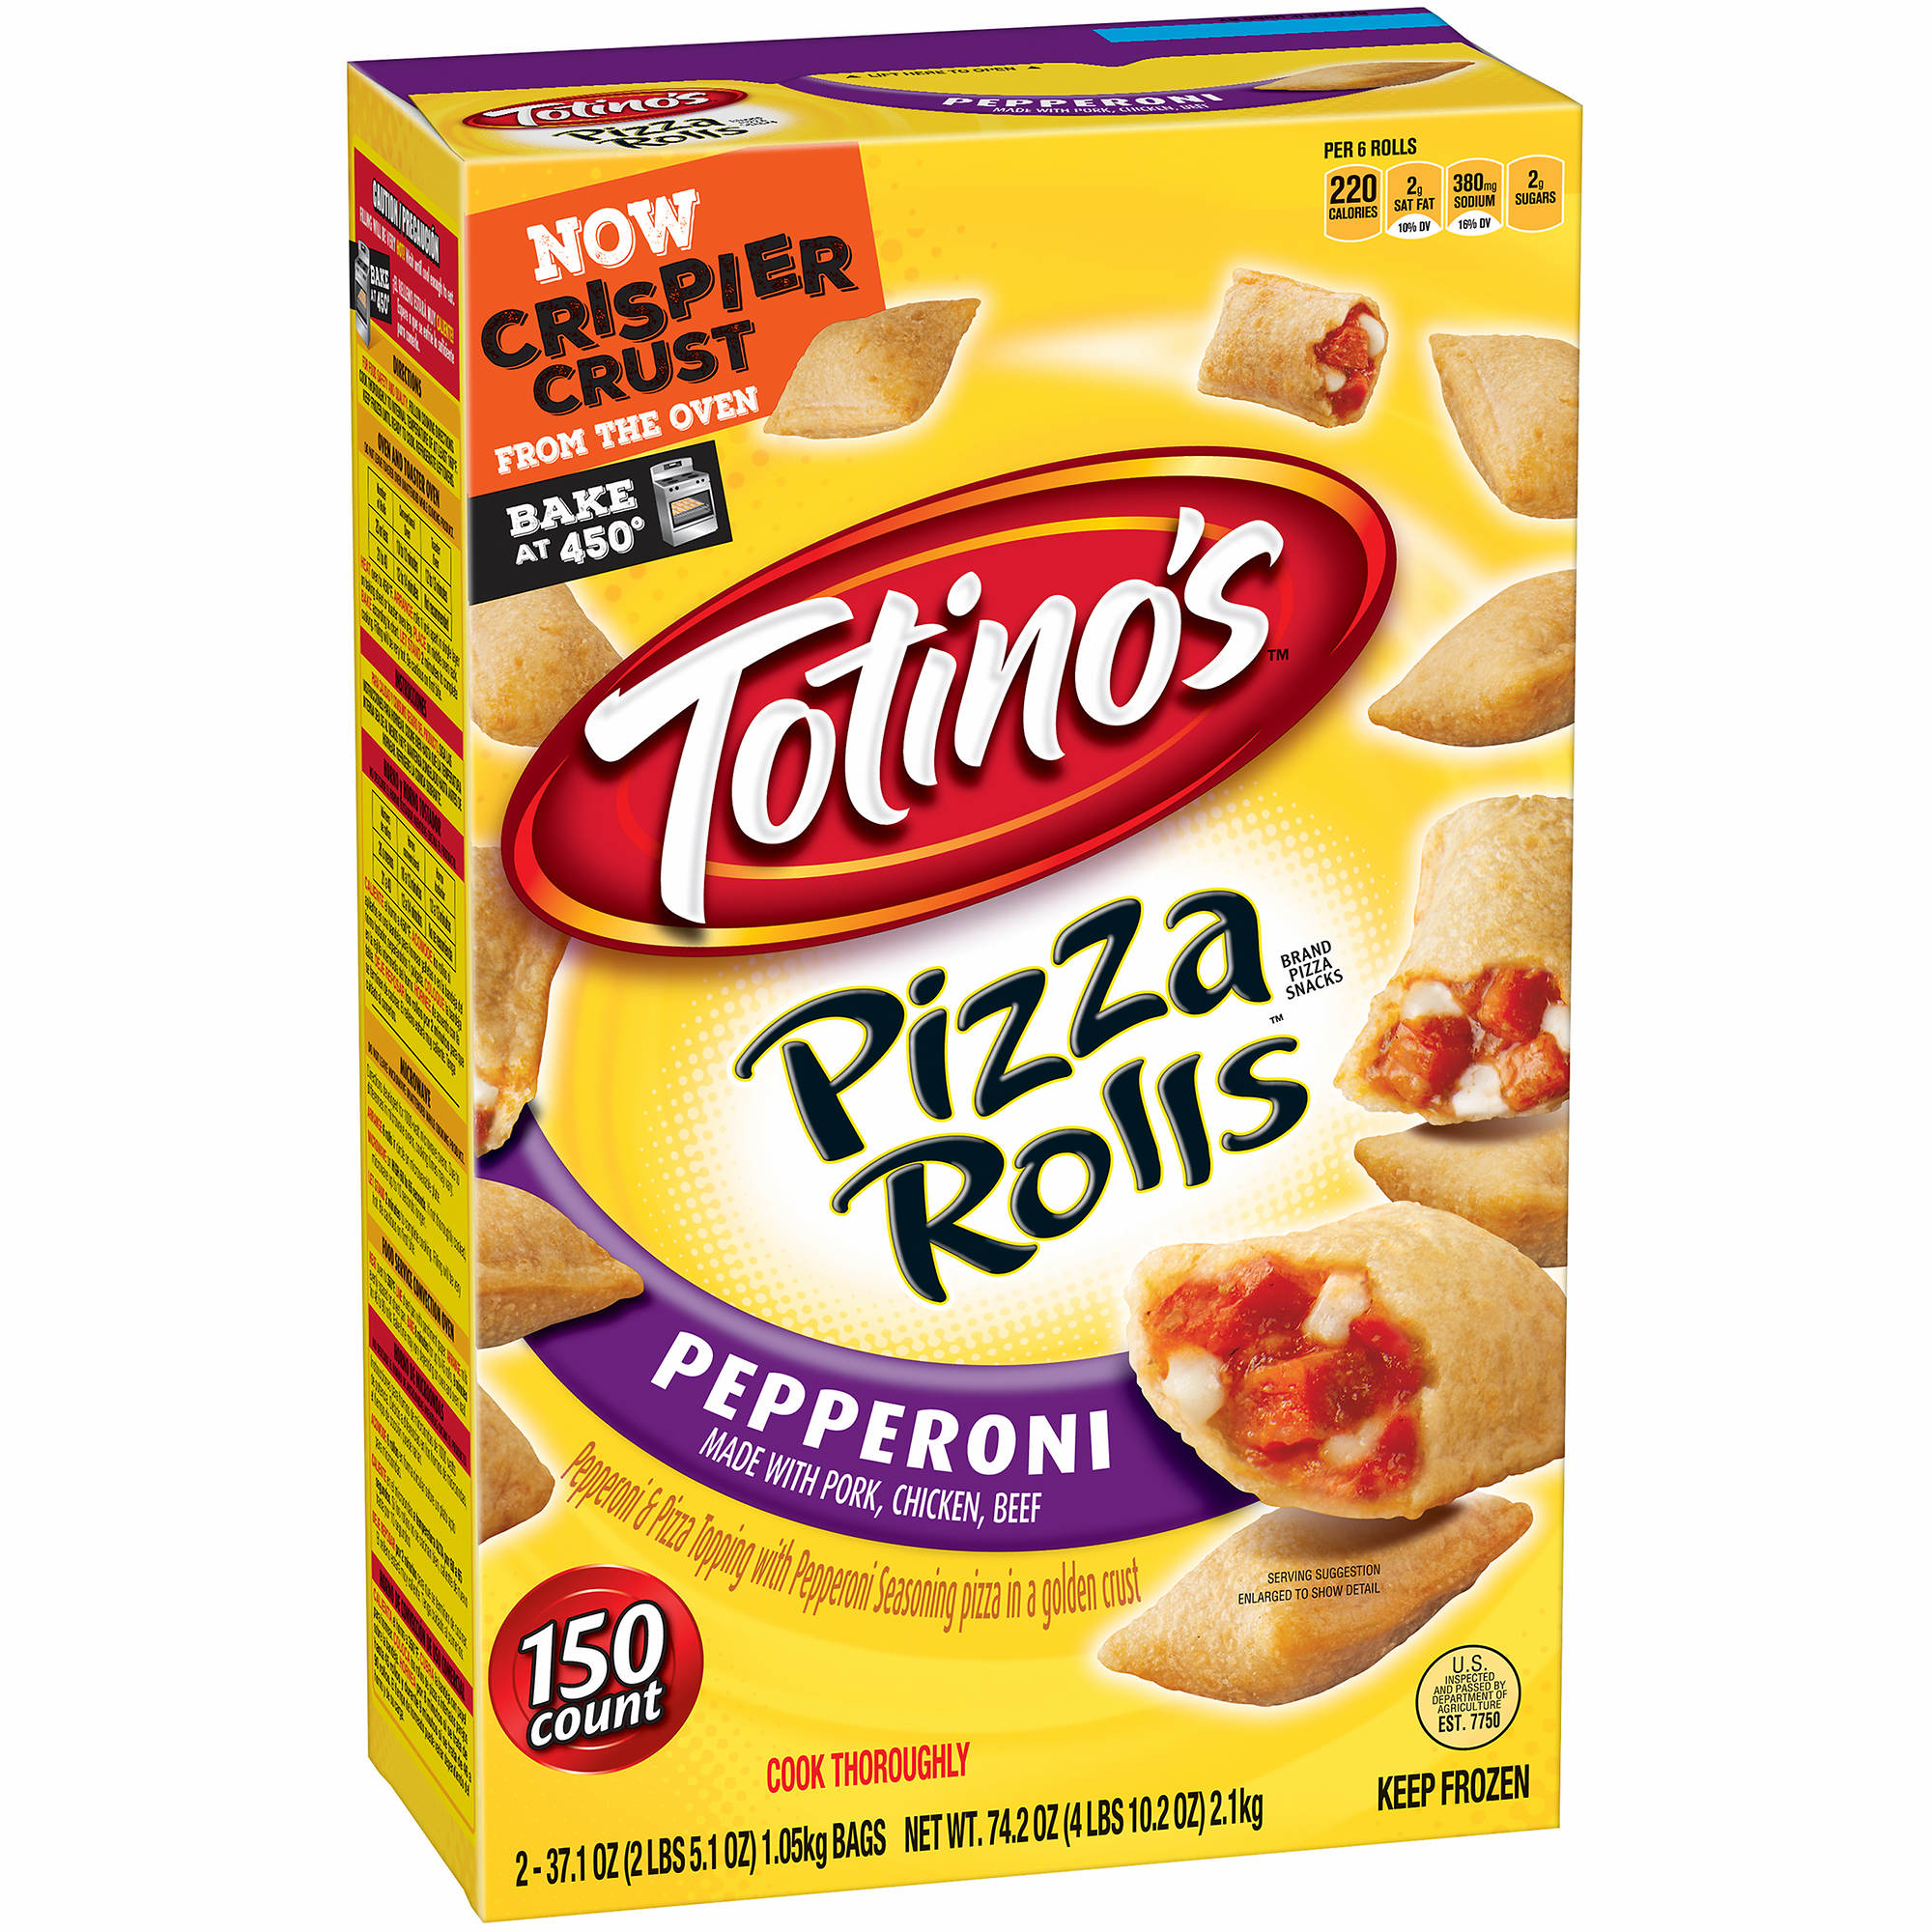 Totino's Pepperoni Pizza Rolls, 150 ct. - BJ's Wholesale Club